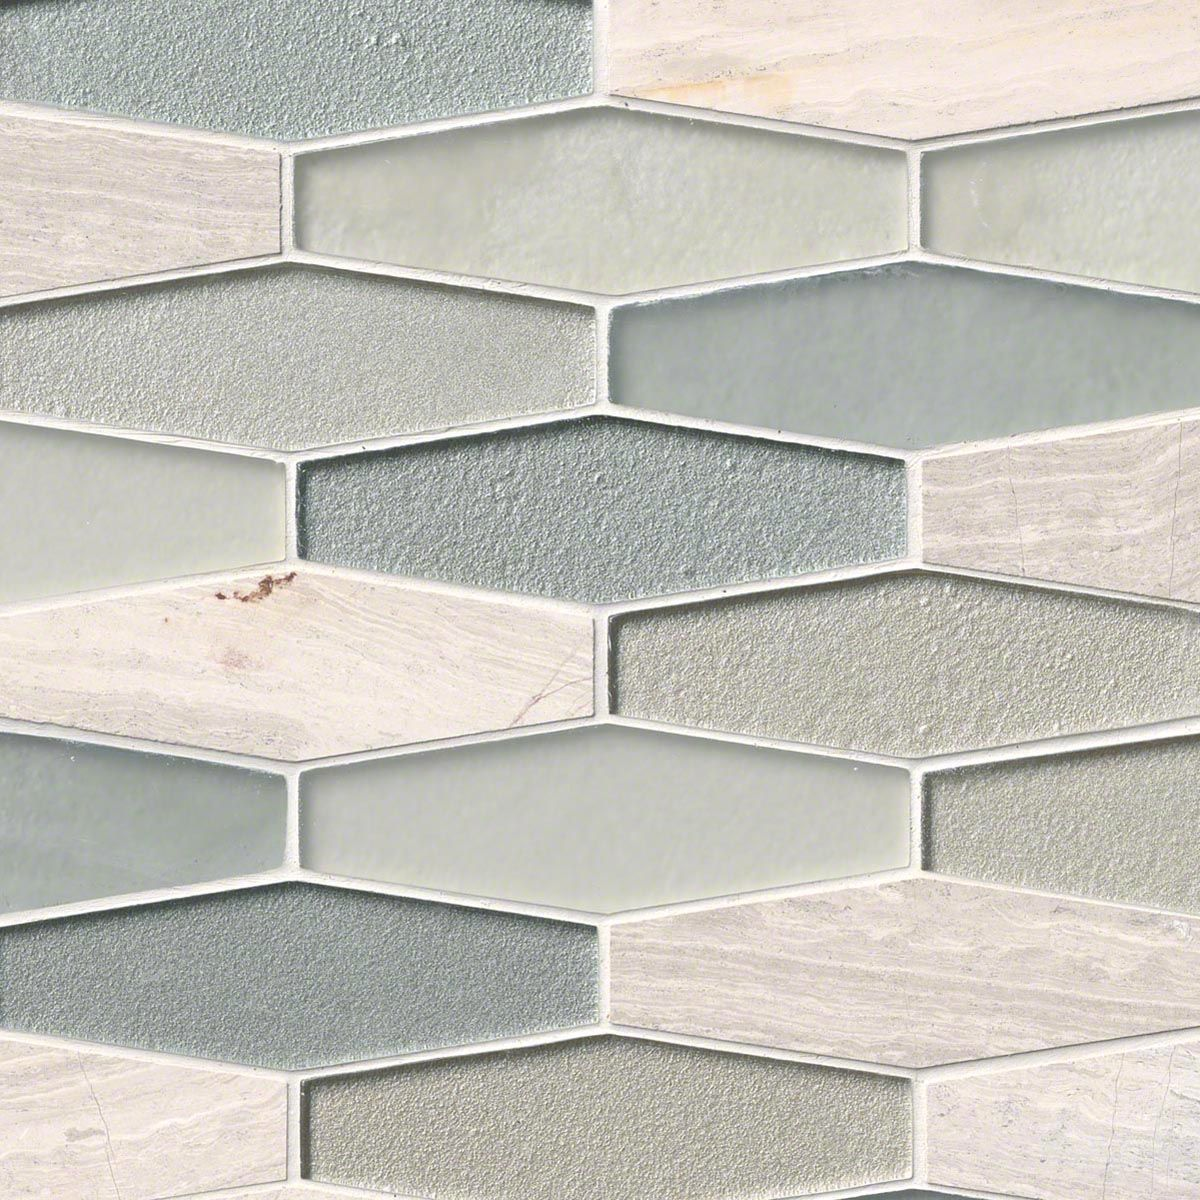 Europa elongated hexagon 8 mm glass and stone mosaic backsplash europa elongated hexagon 8 mm glass and stone mosaic backsplash tile dailygadgetfo Choice Image